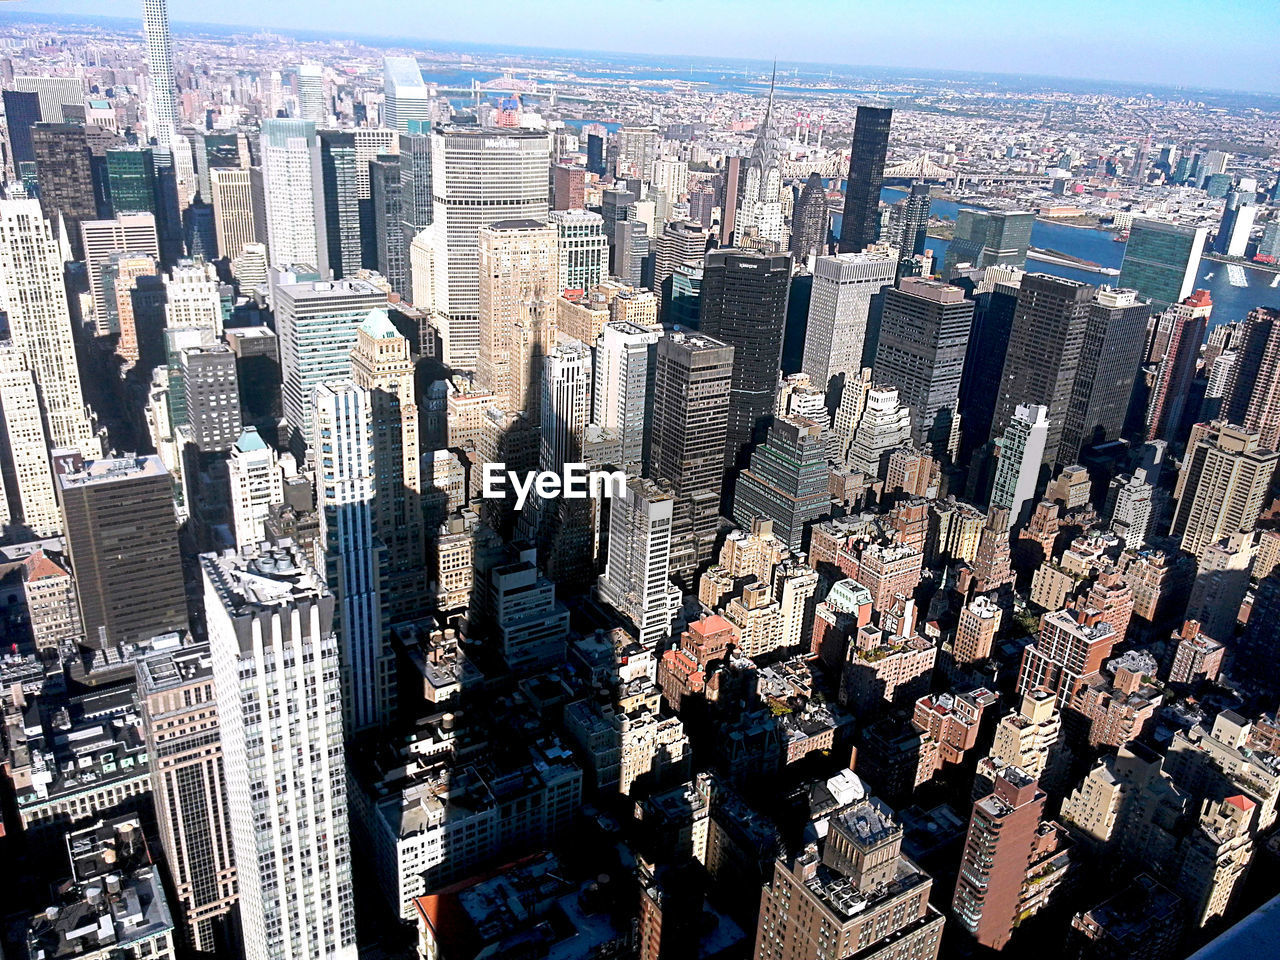 skyscraper, cityscape, architecture, city, aerial view, building exterior, crowded, urban skyline, modern, travel destinations, day, outdoors, built structure, sky, people